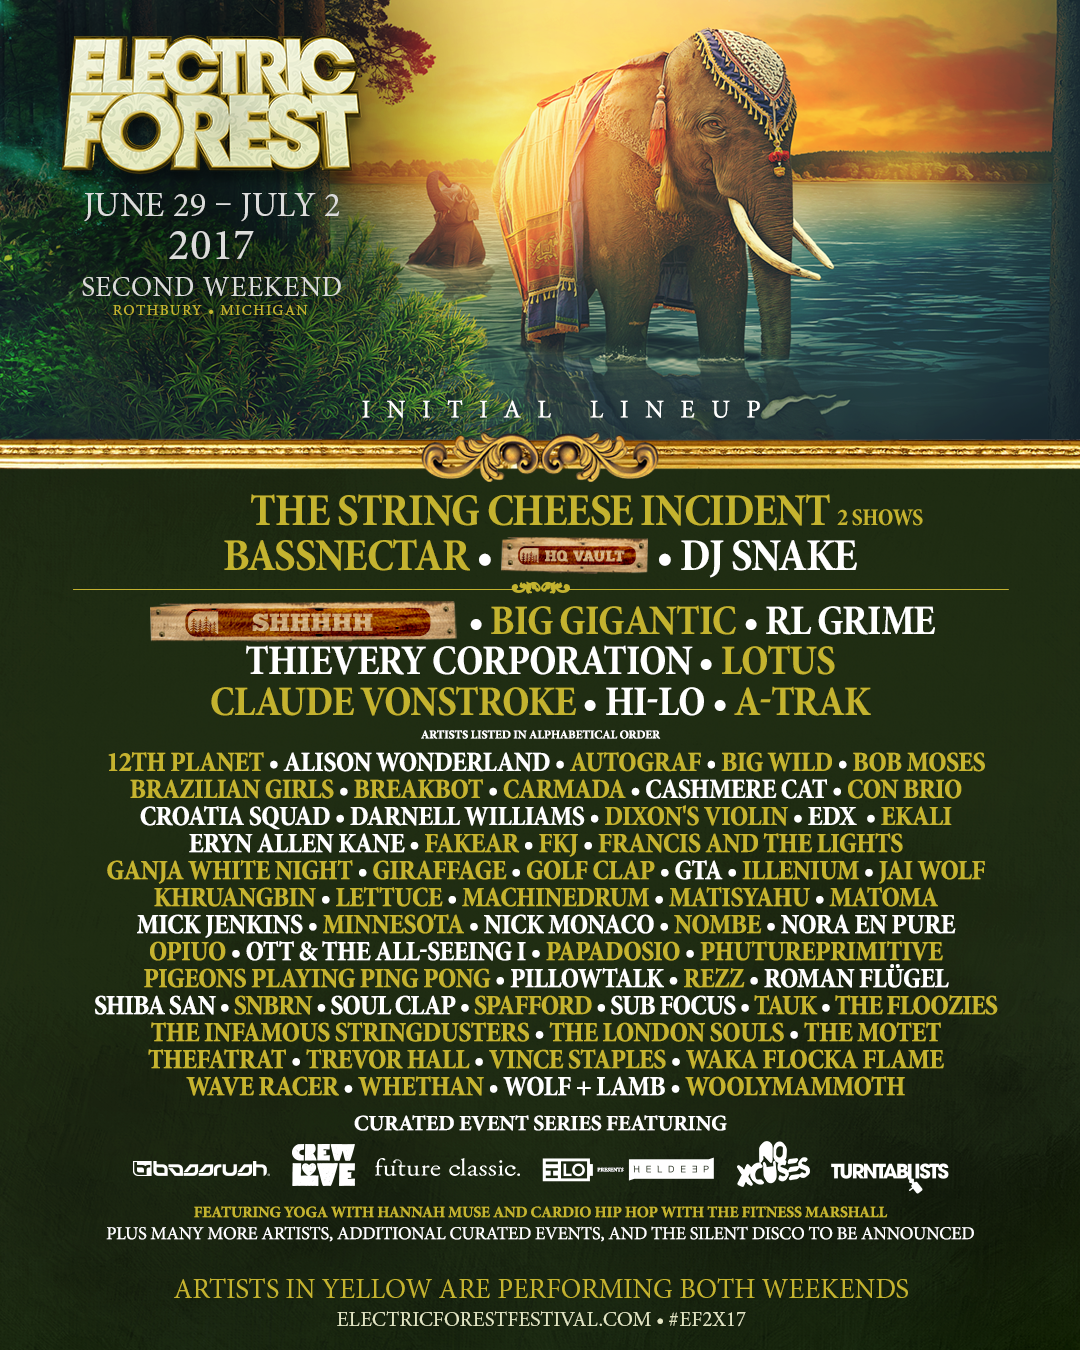 Electric Forest Weekend 2